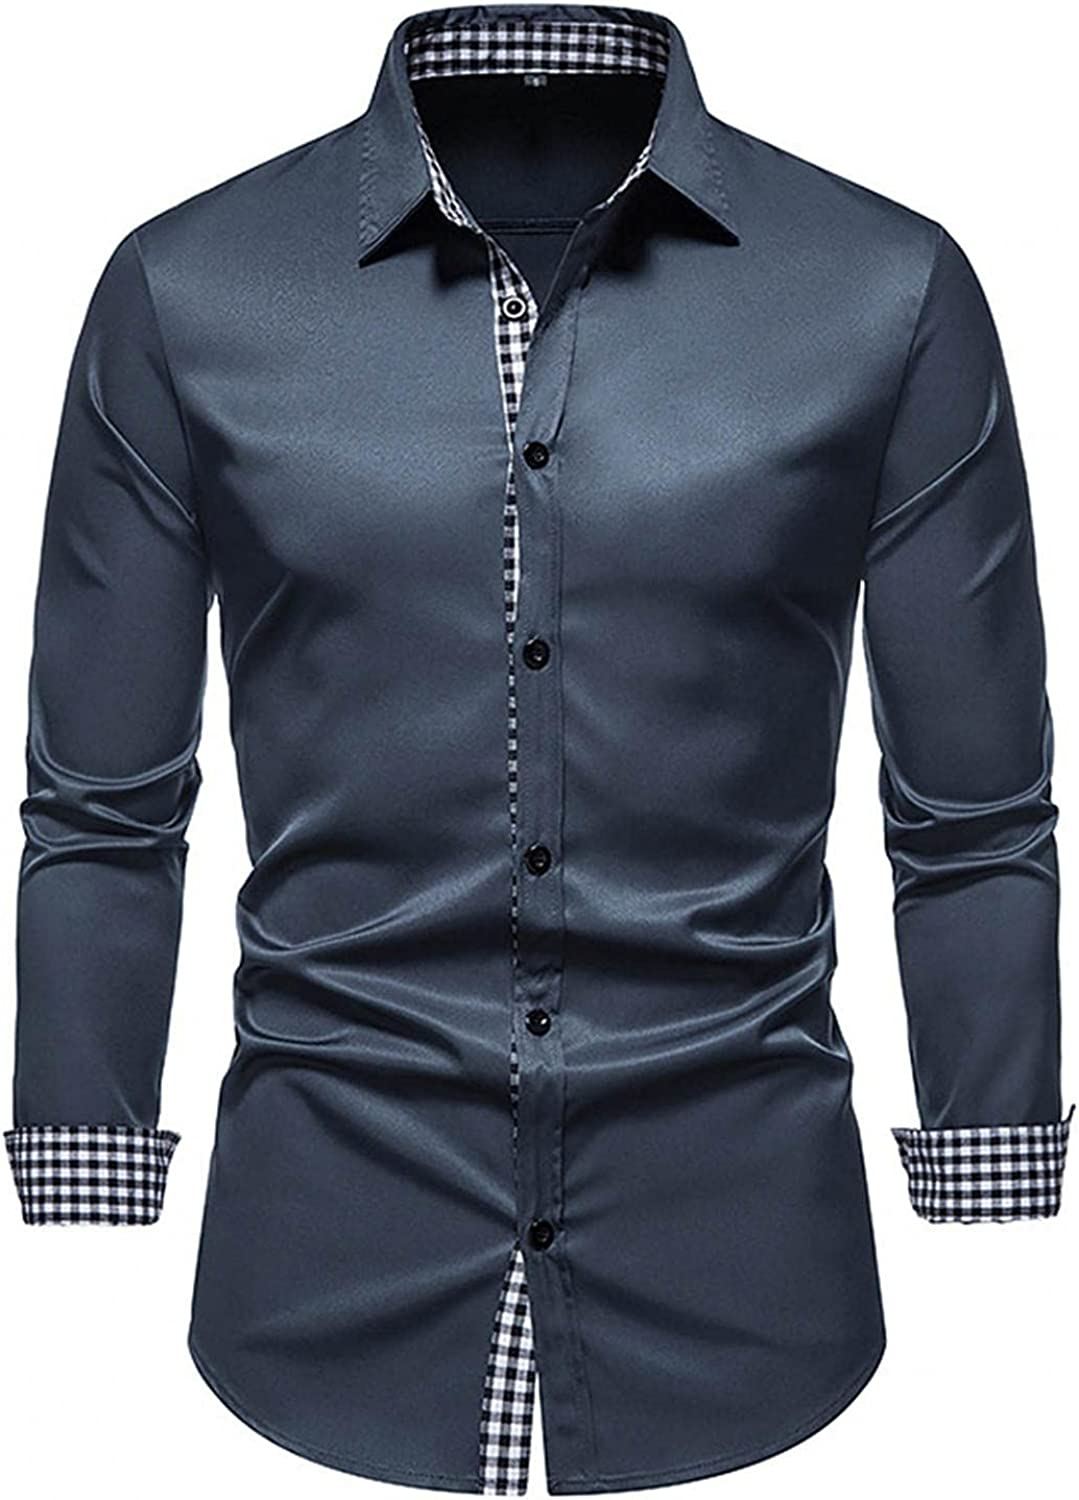 LEIYAN Mens Long Sleeve Dress Shirts Casual Stand Collar Slim Fit Tailored Button Down Business Work Tops